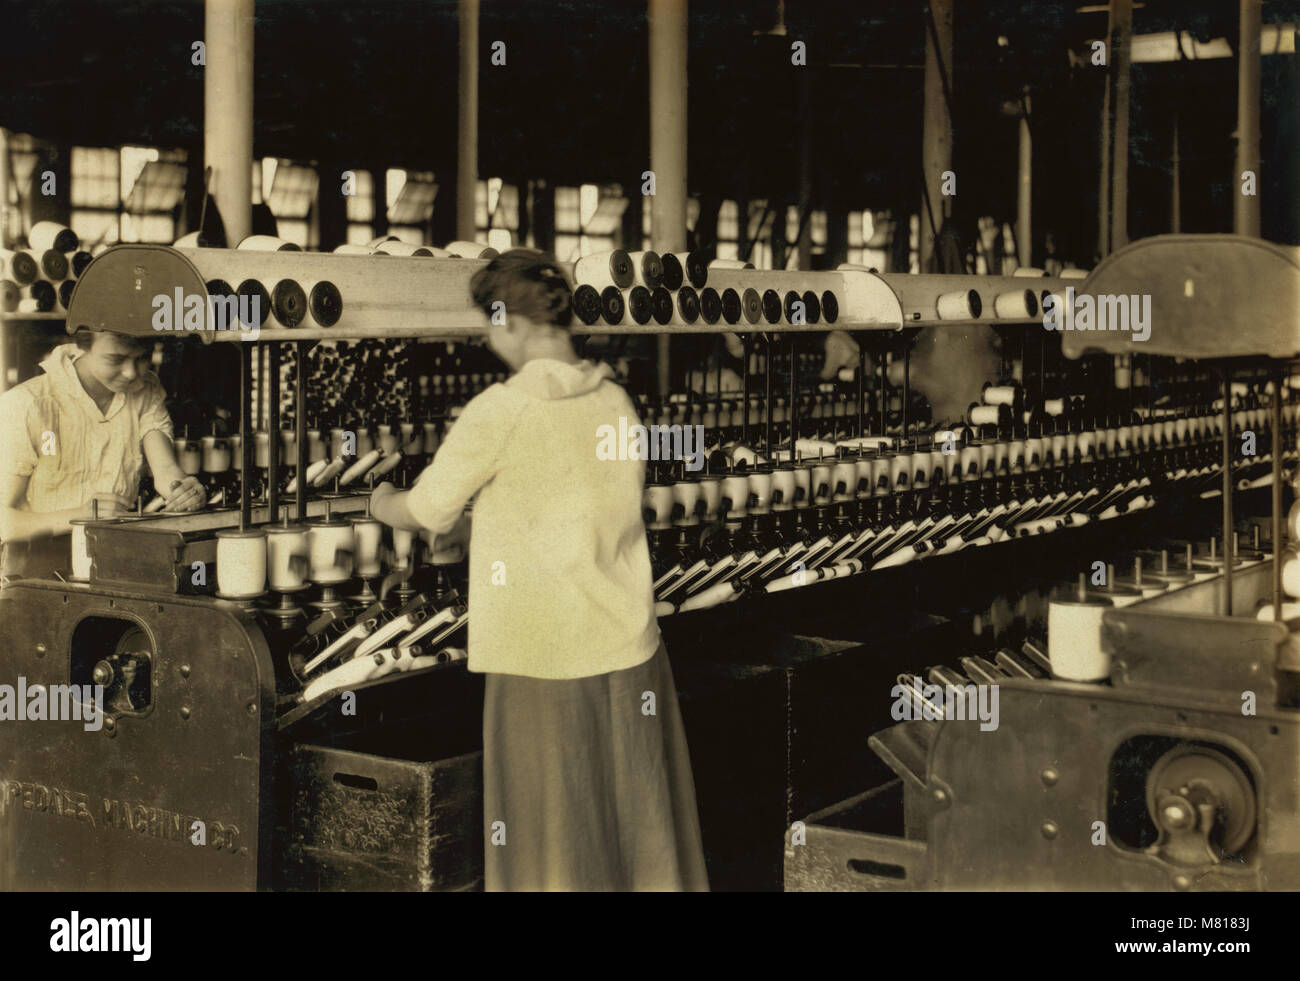 Spooler Tenders, 14 years old, Berkshire Cotton Mills, Adams, Massachusetts, USA, Lewis Hine for National Child Stock Photo